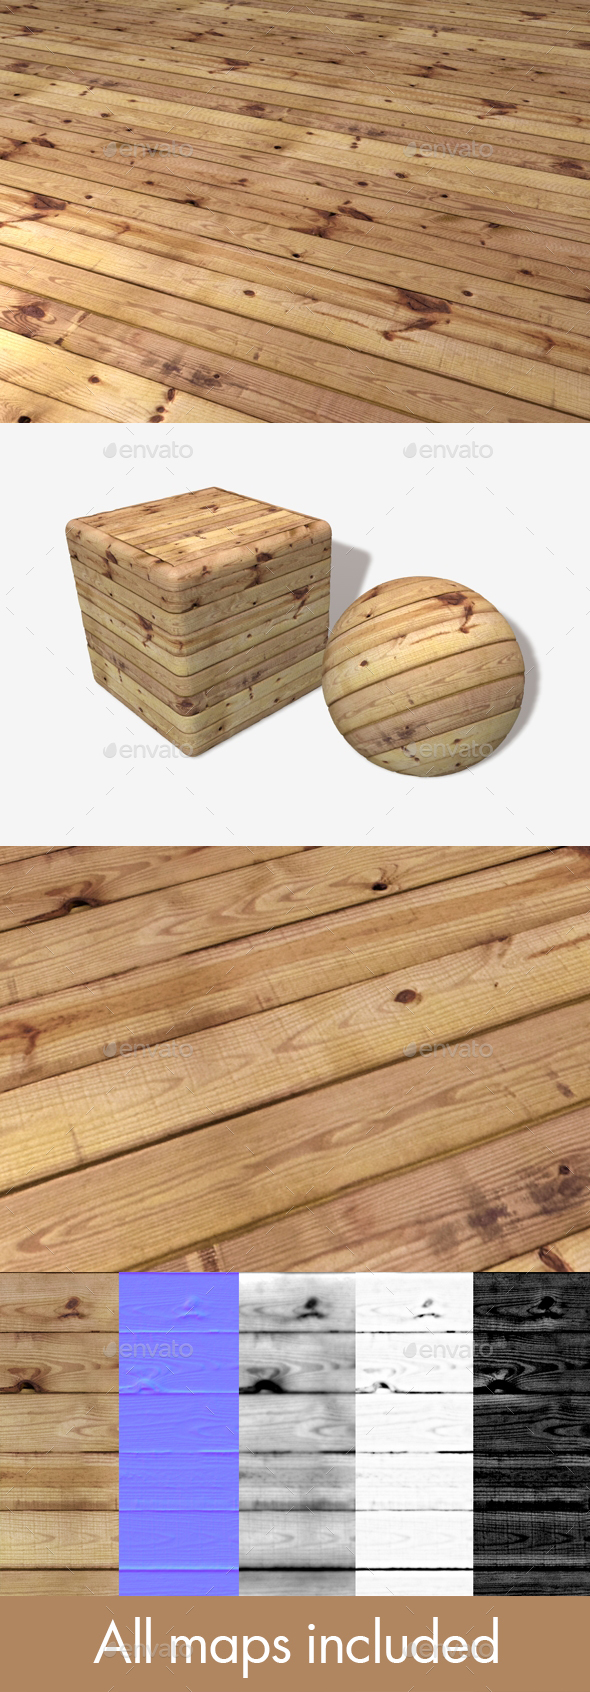 Wooden Planks Seamless Texture - 3DOcean Item for Sale